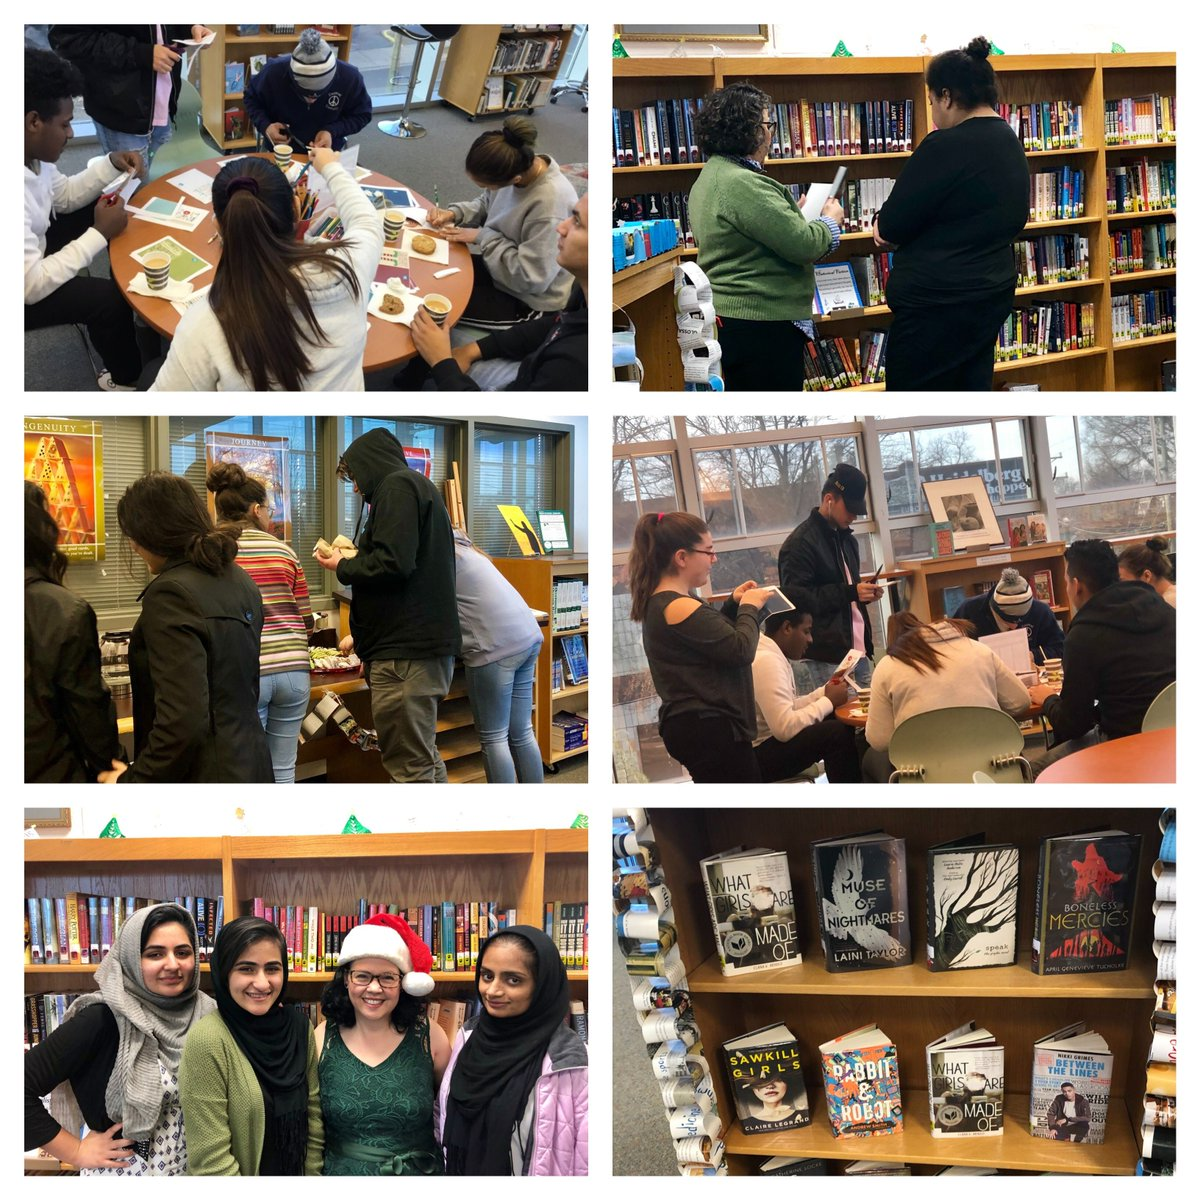 Library Holiday Open House! <a target='_blank' href='https://t.co/y1MrQ72Jqo'>https://t.co/y1MrQ72Jqo</a>